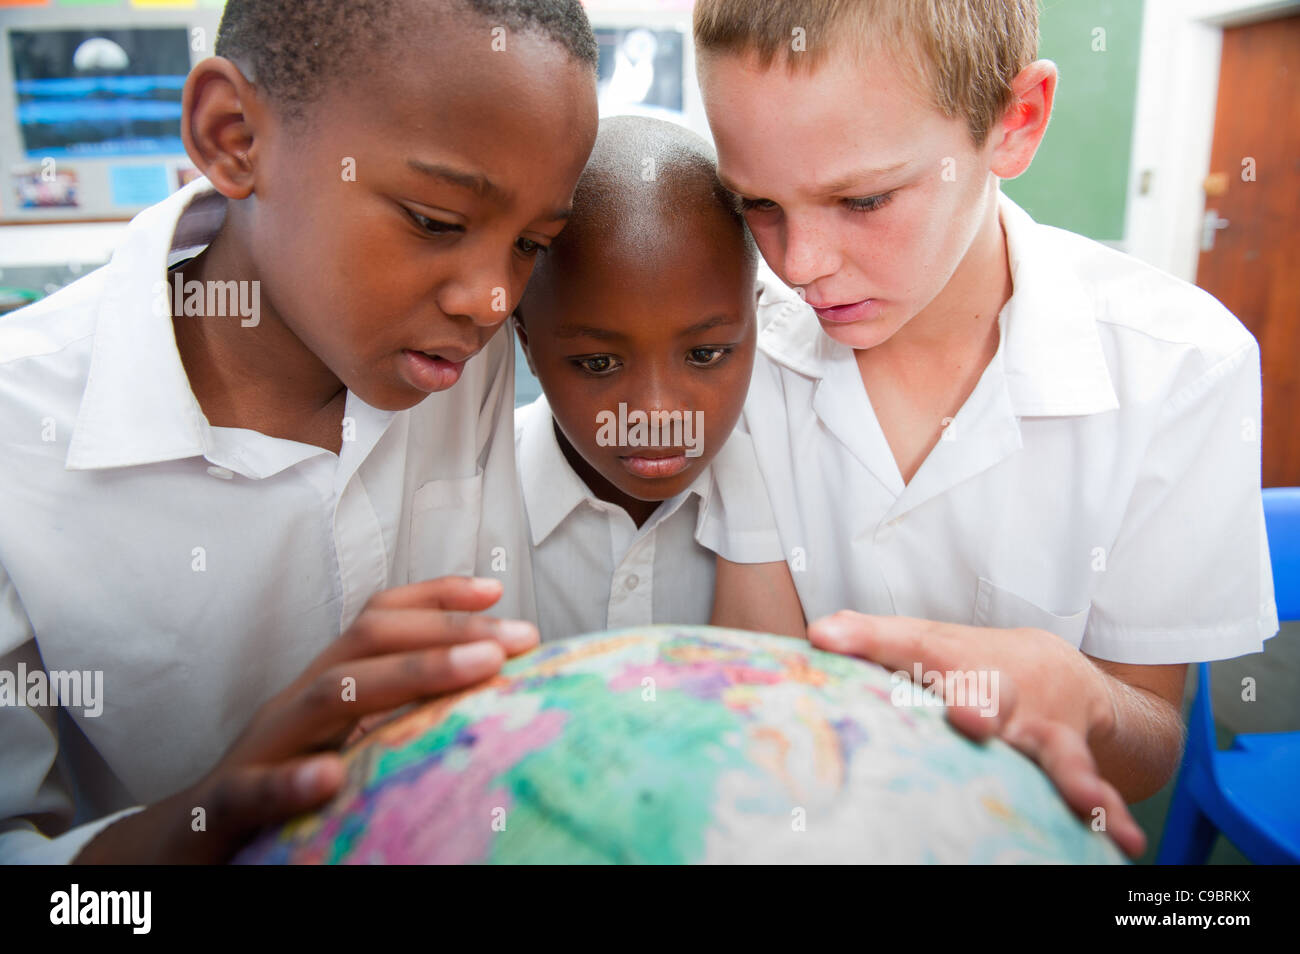 Three boys looking at globe in classroom, Johannesburg, Gauteng Province, South Africa - Stock Image